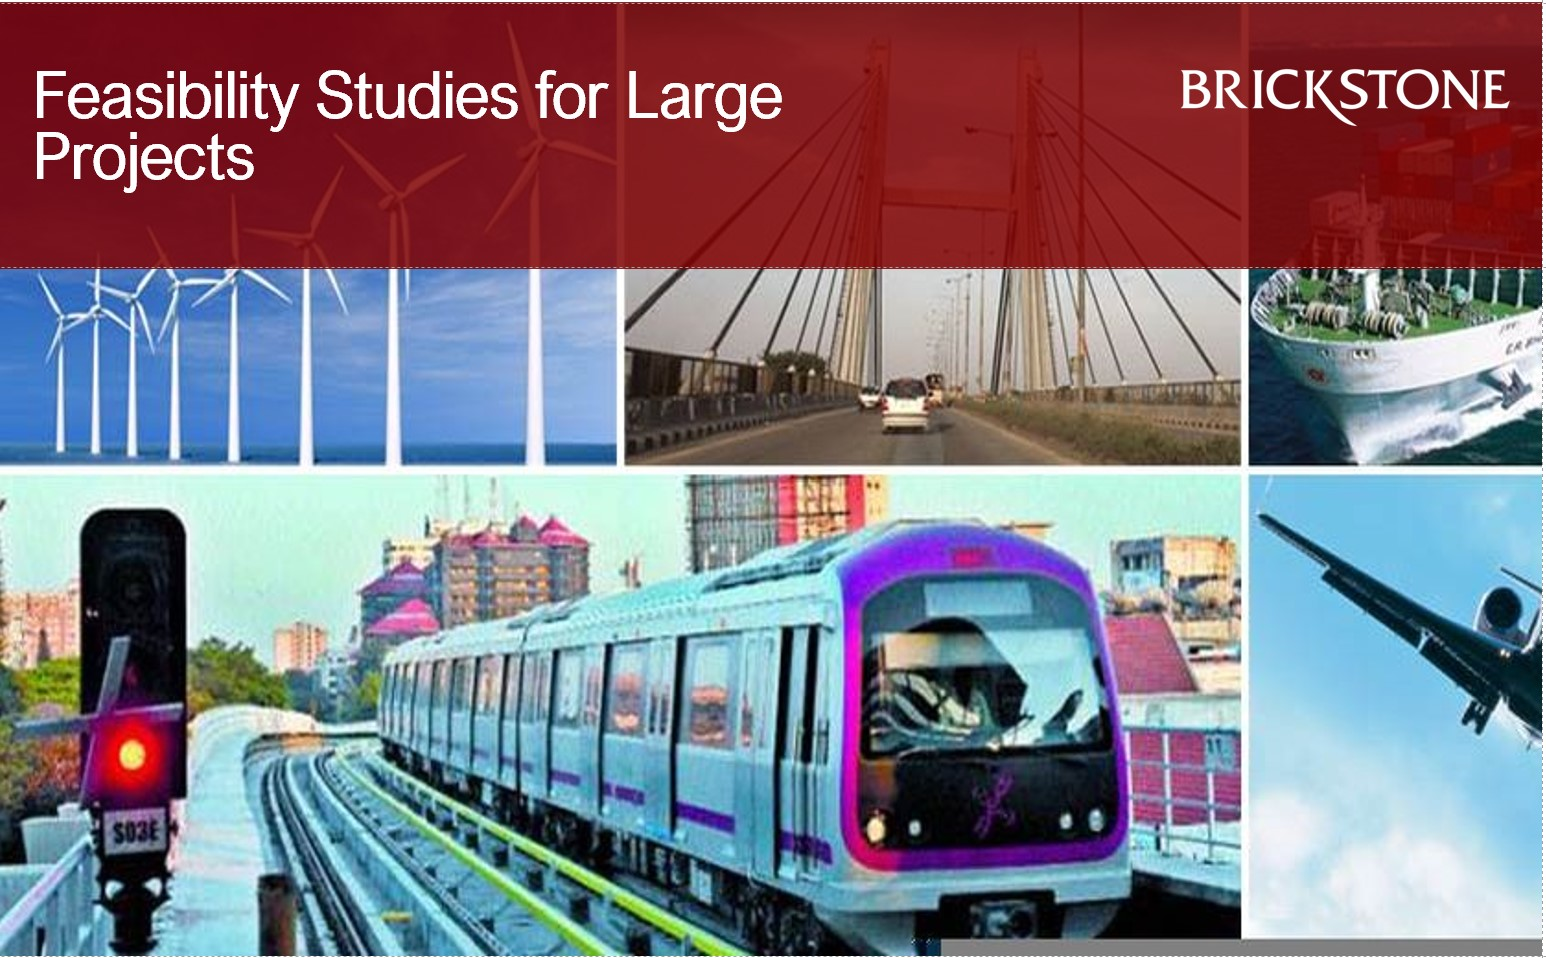 Feasibility Studies for Large Projects